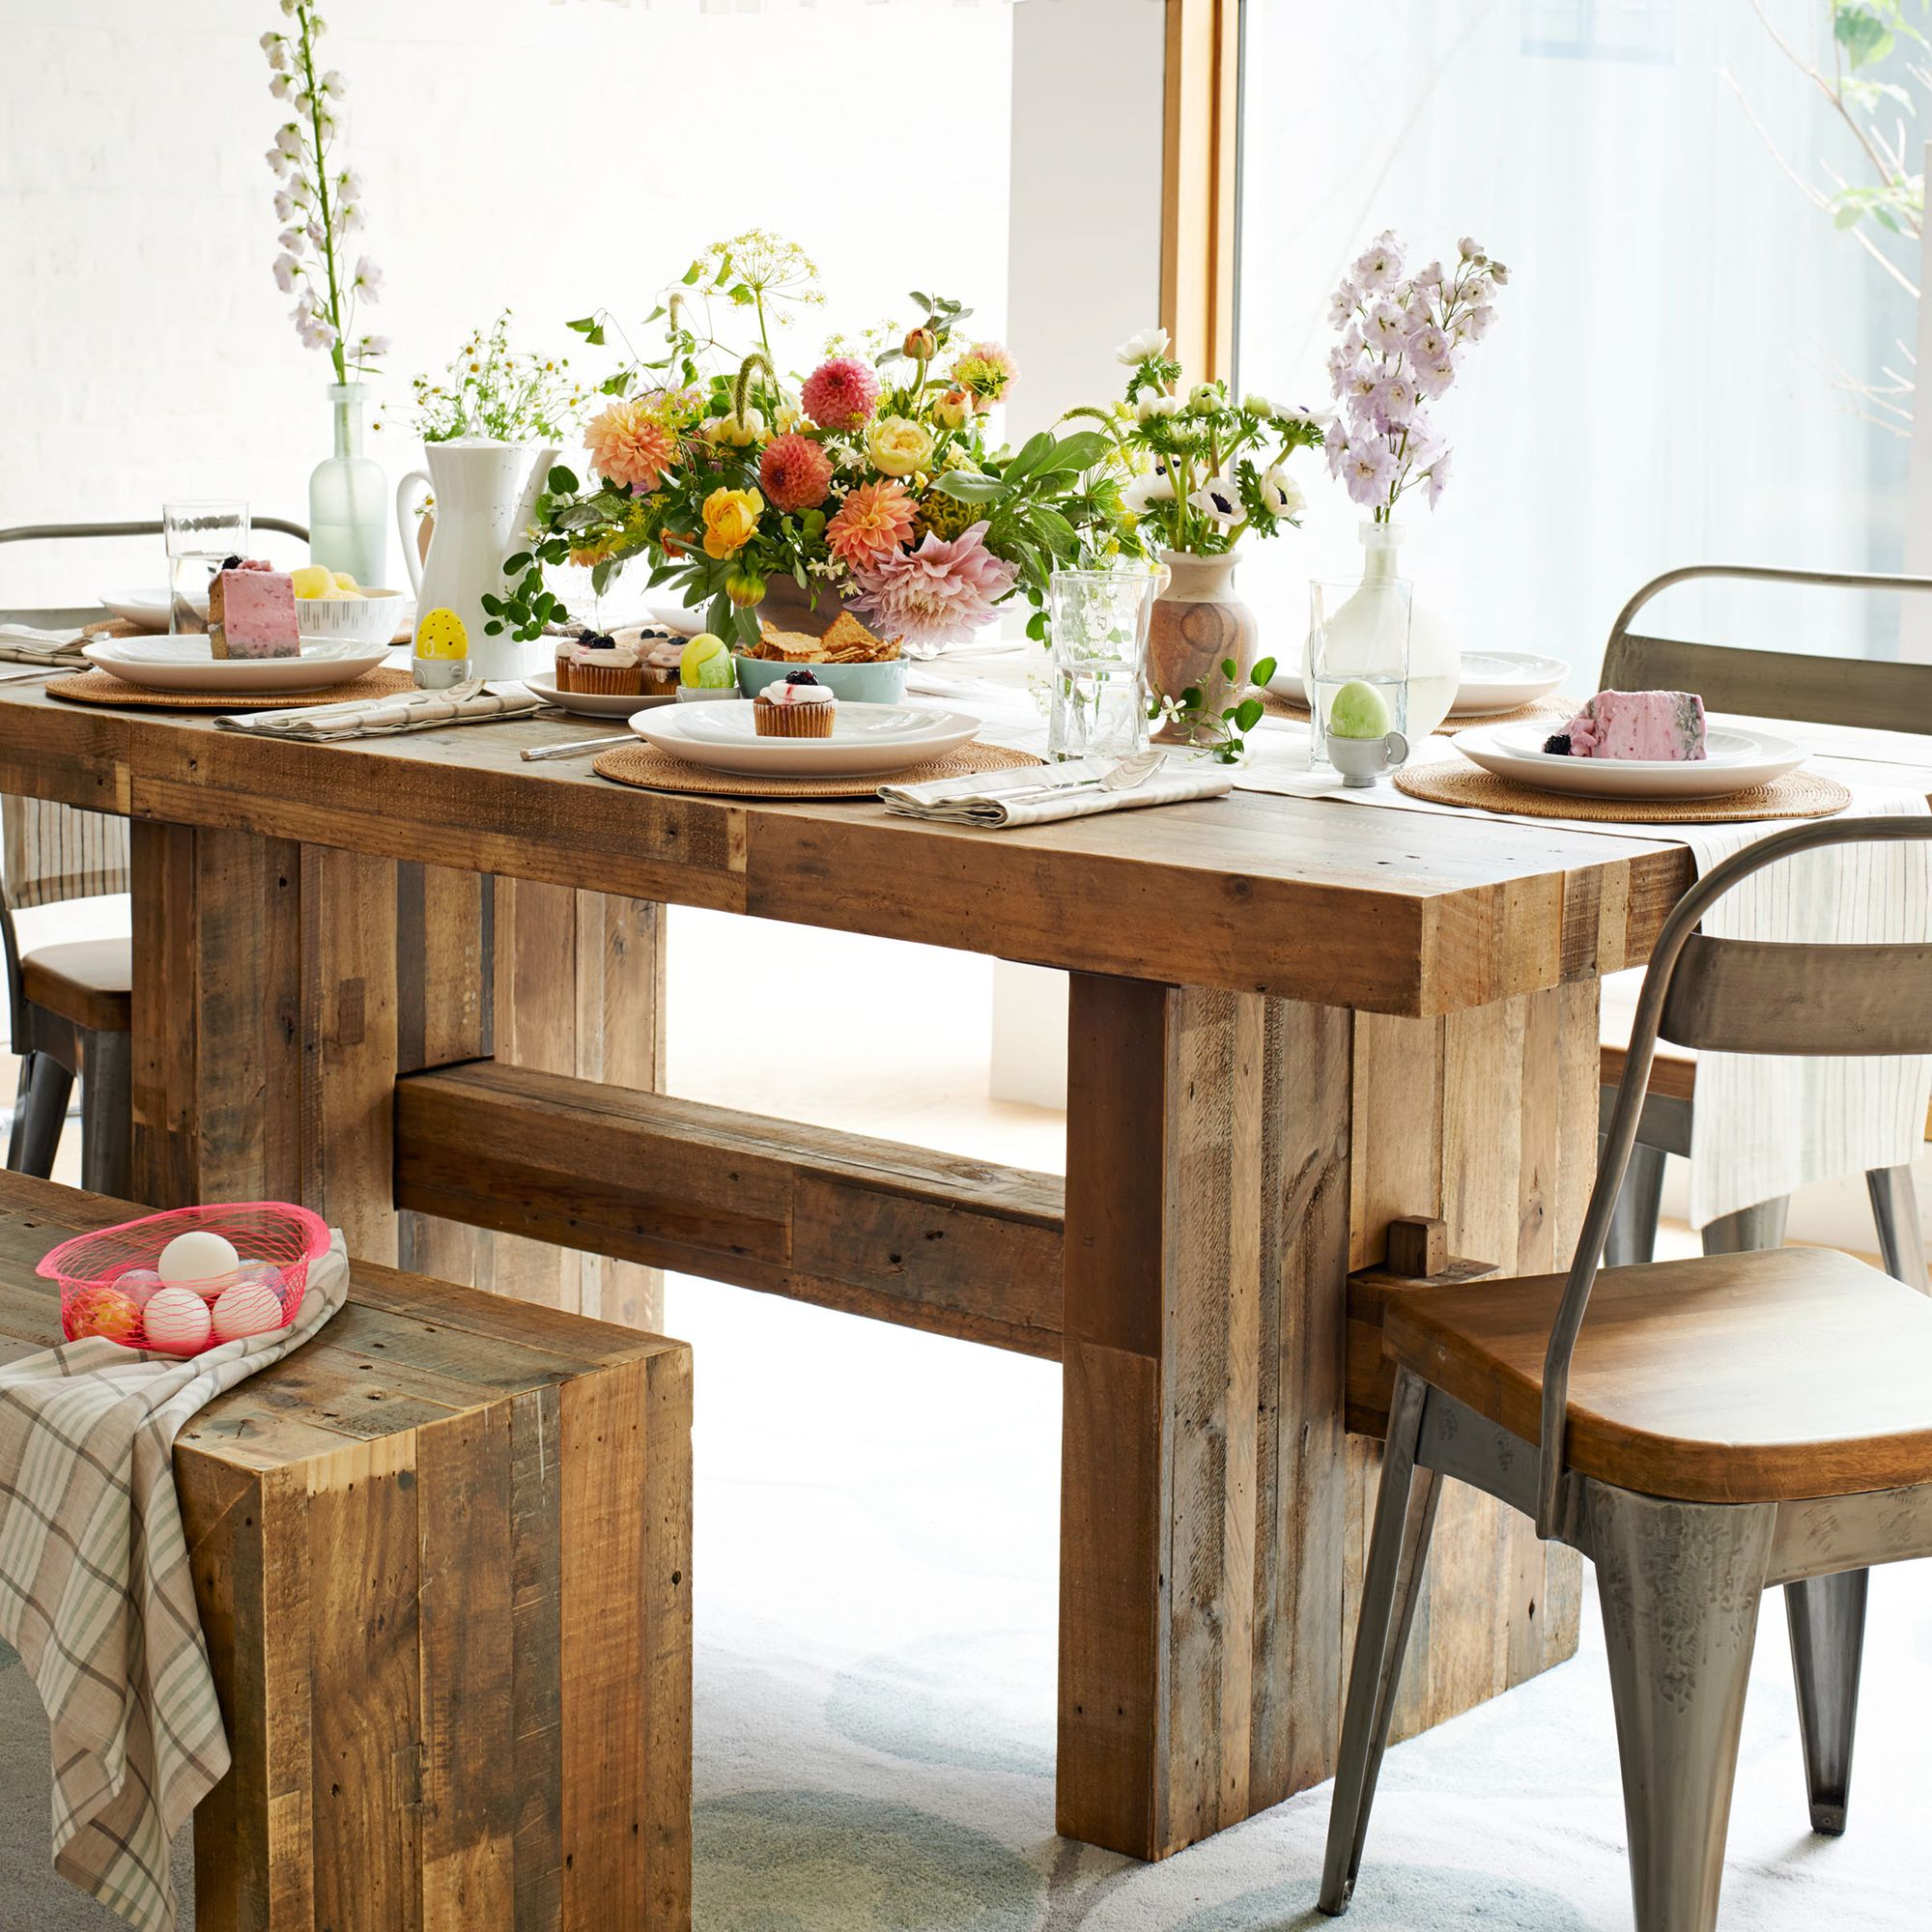 Design West Elm Dining Table west elm dining room table buy emmerson 6 seater online at